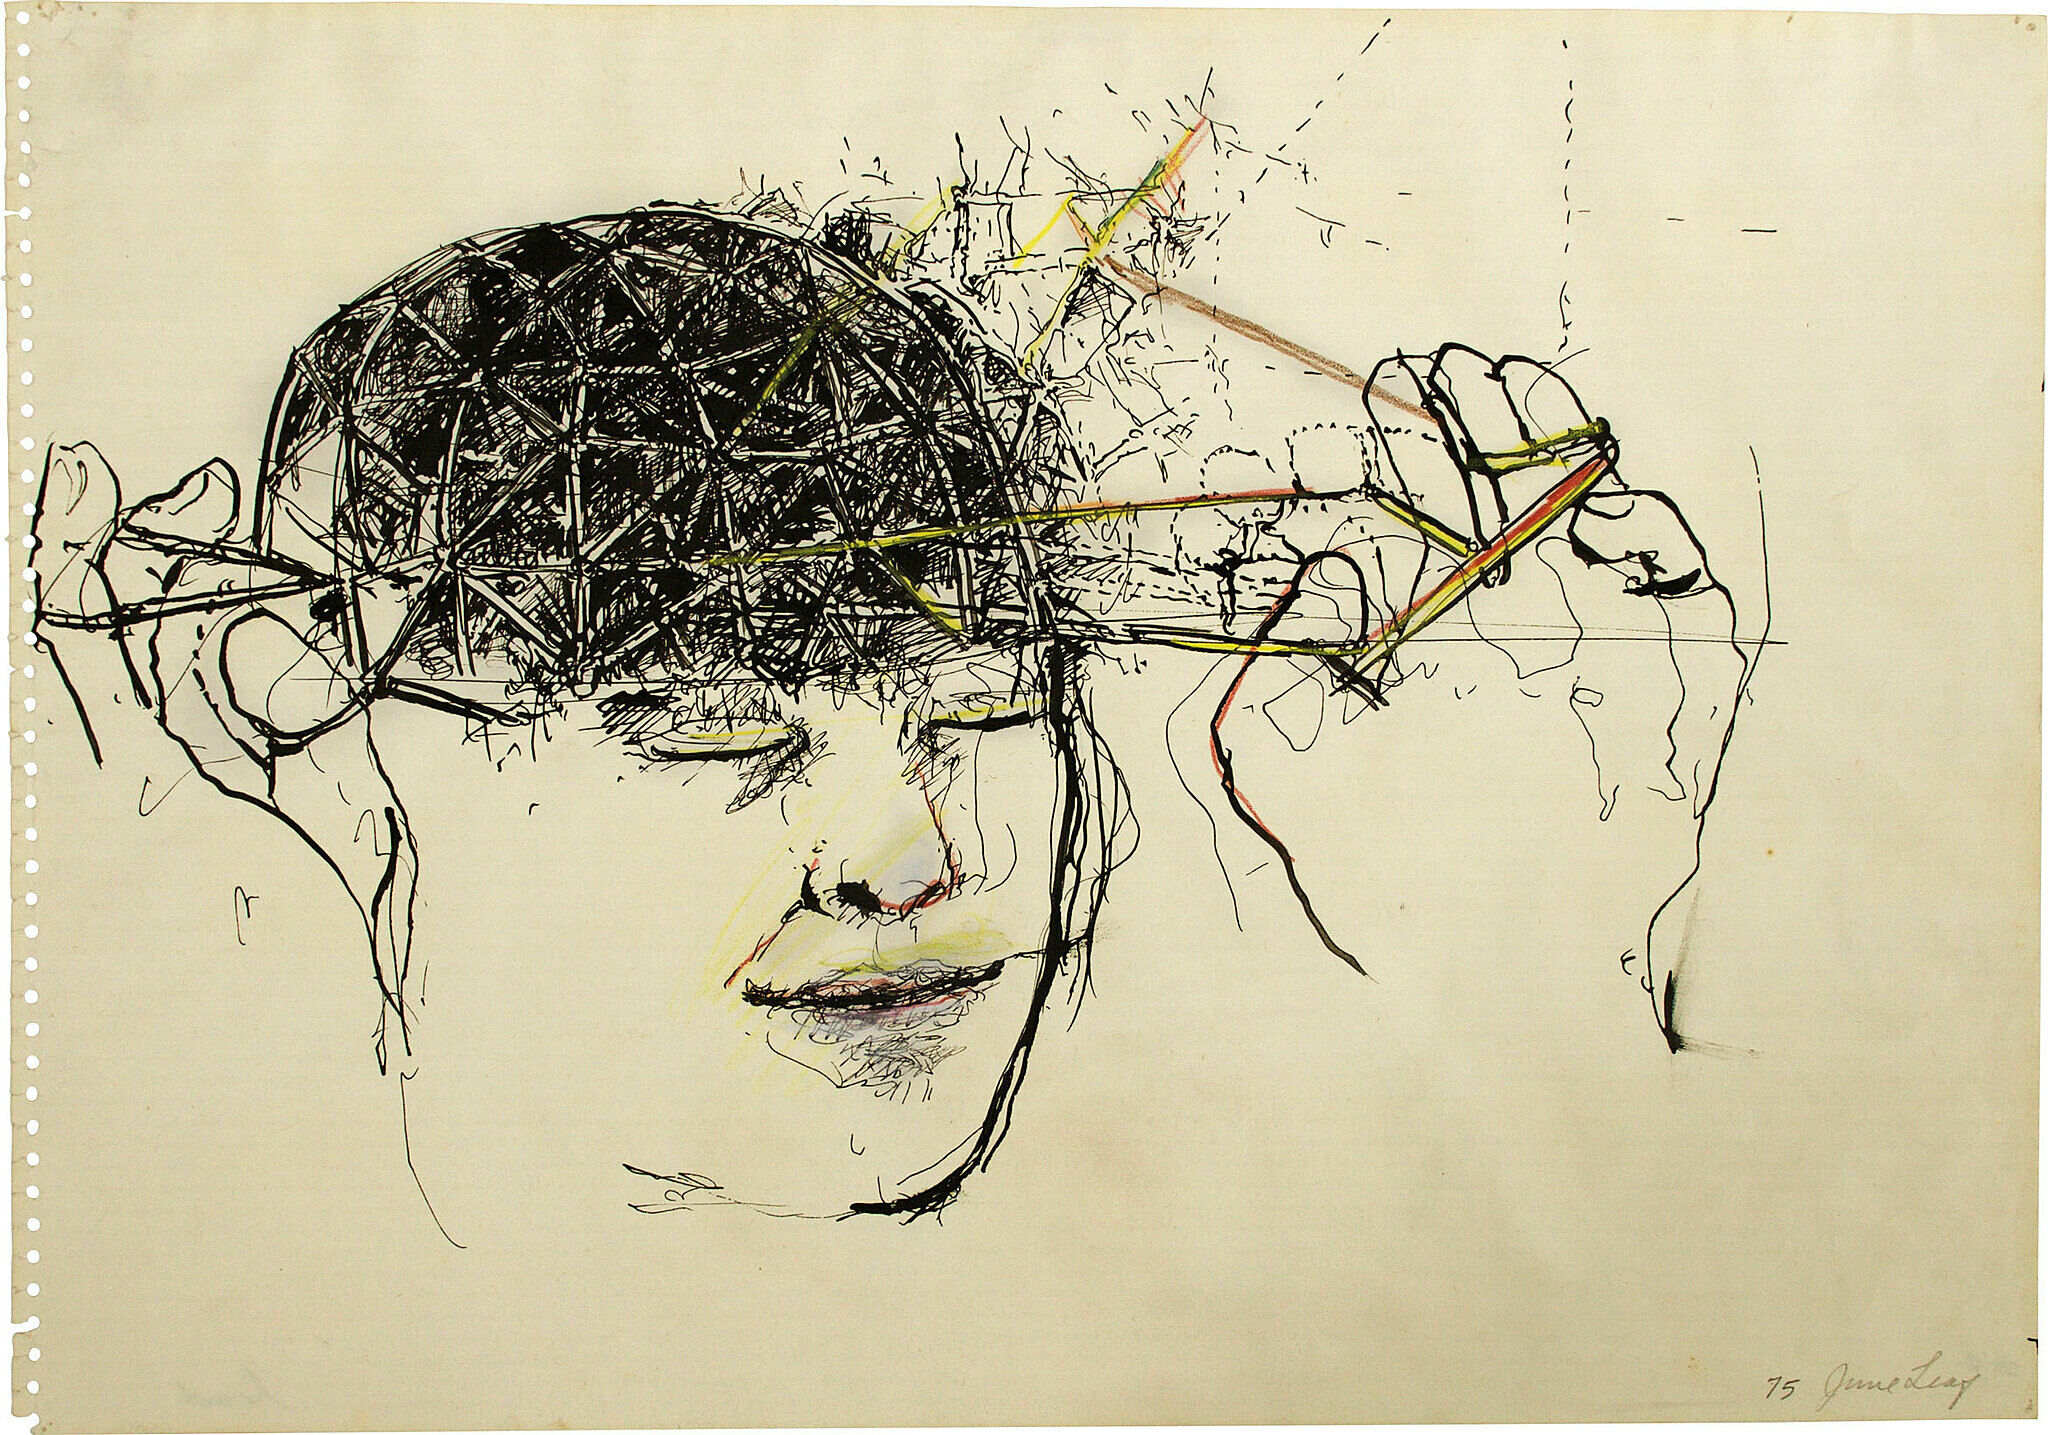 A drawing by June Leaf of a human head in black ink.